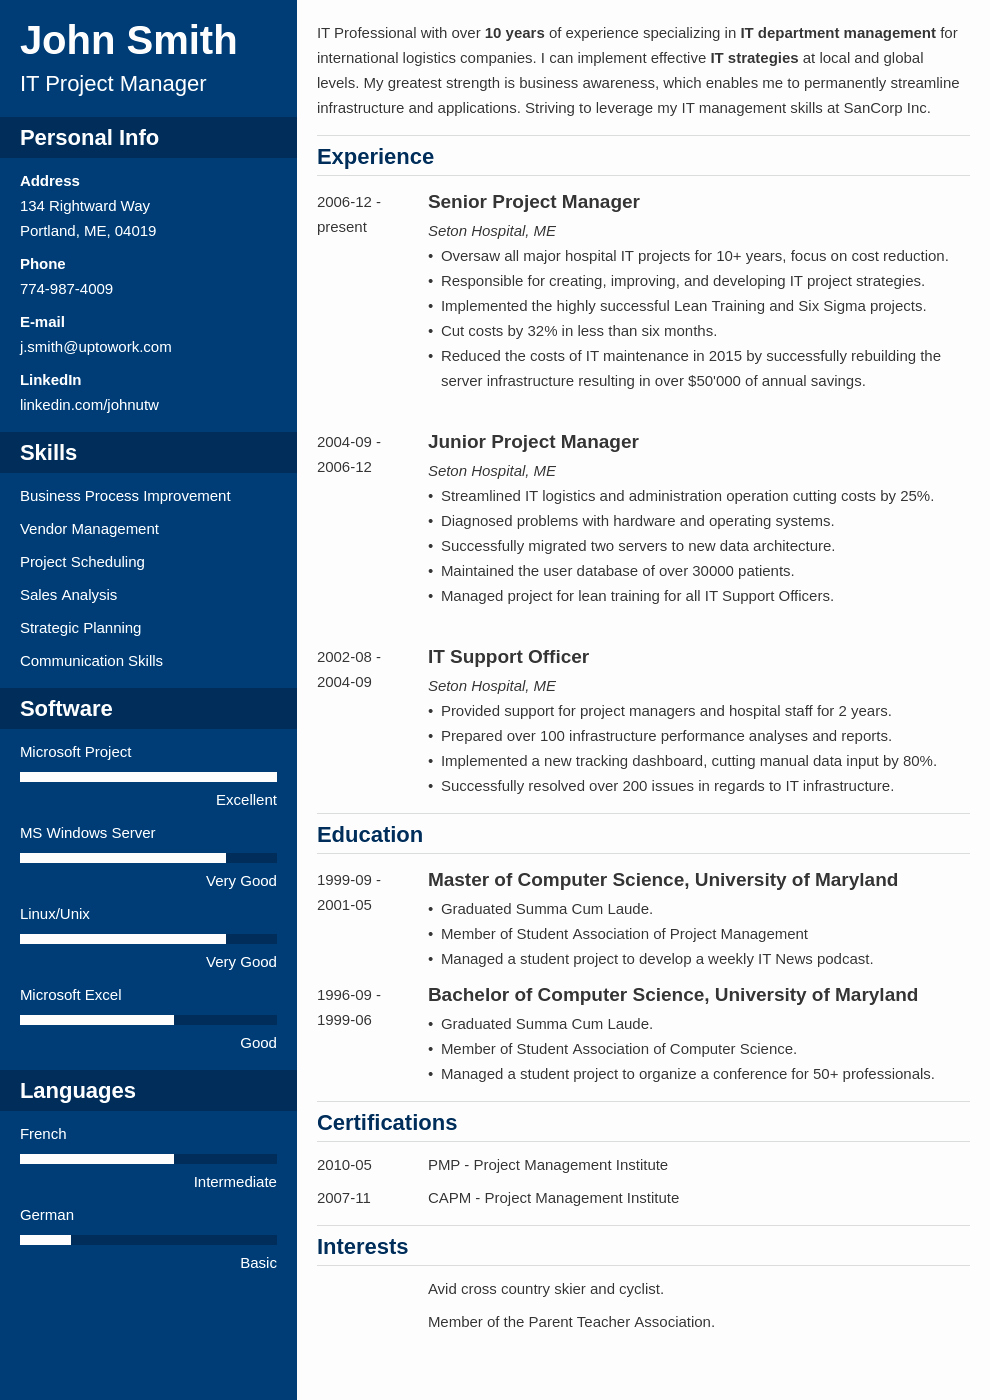 Professional Resume formats Free Download Inspirational 20 Cv Templates Create Your Professional Cv In 5 Minutes